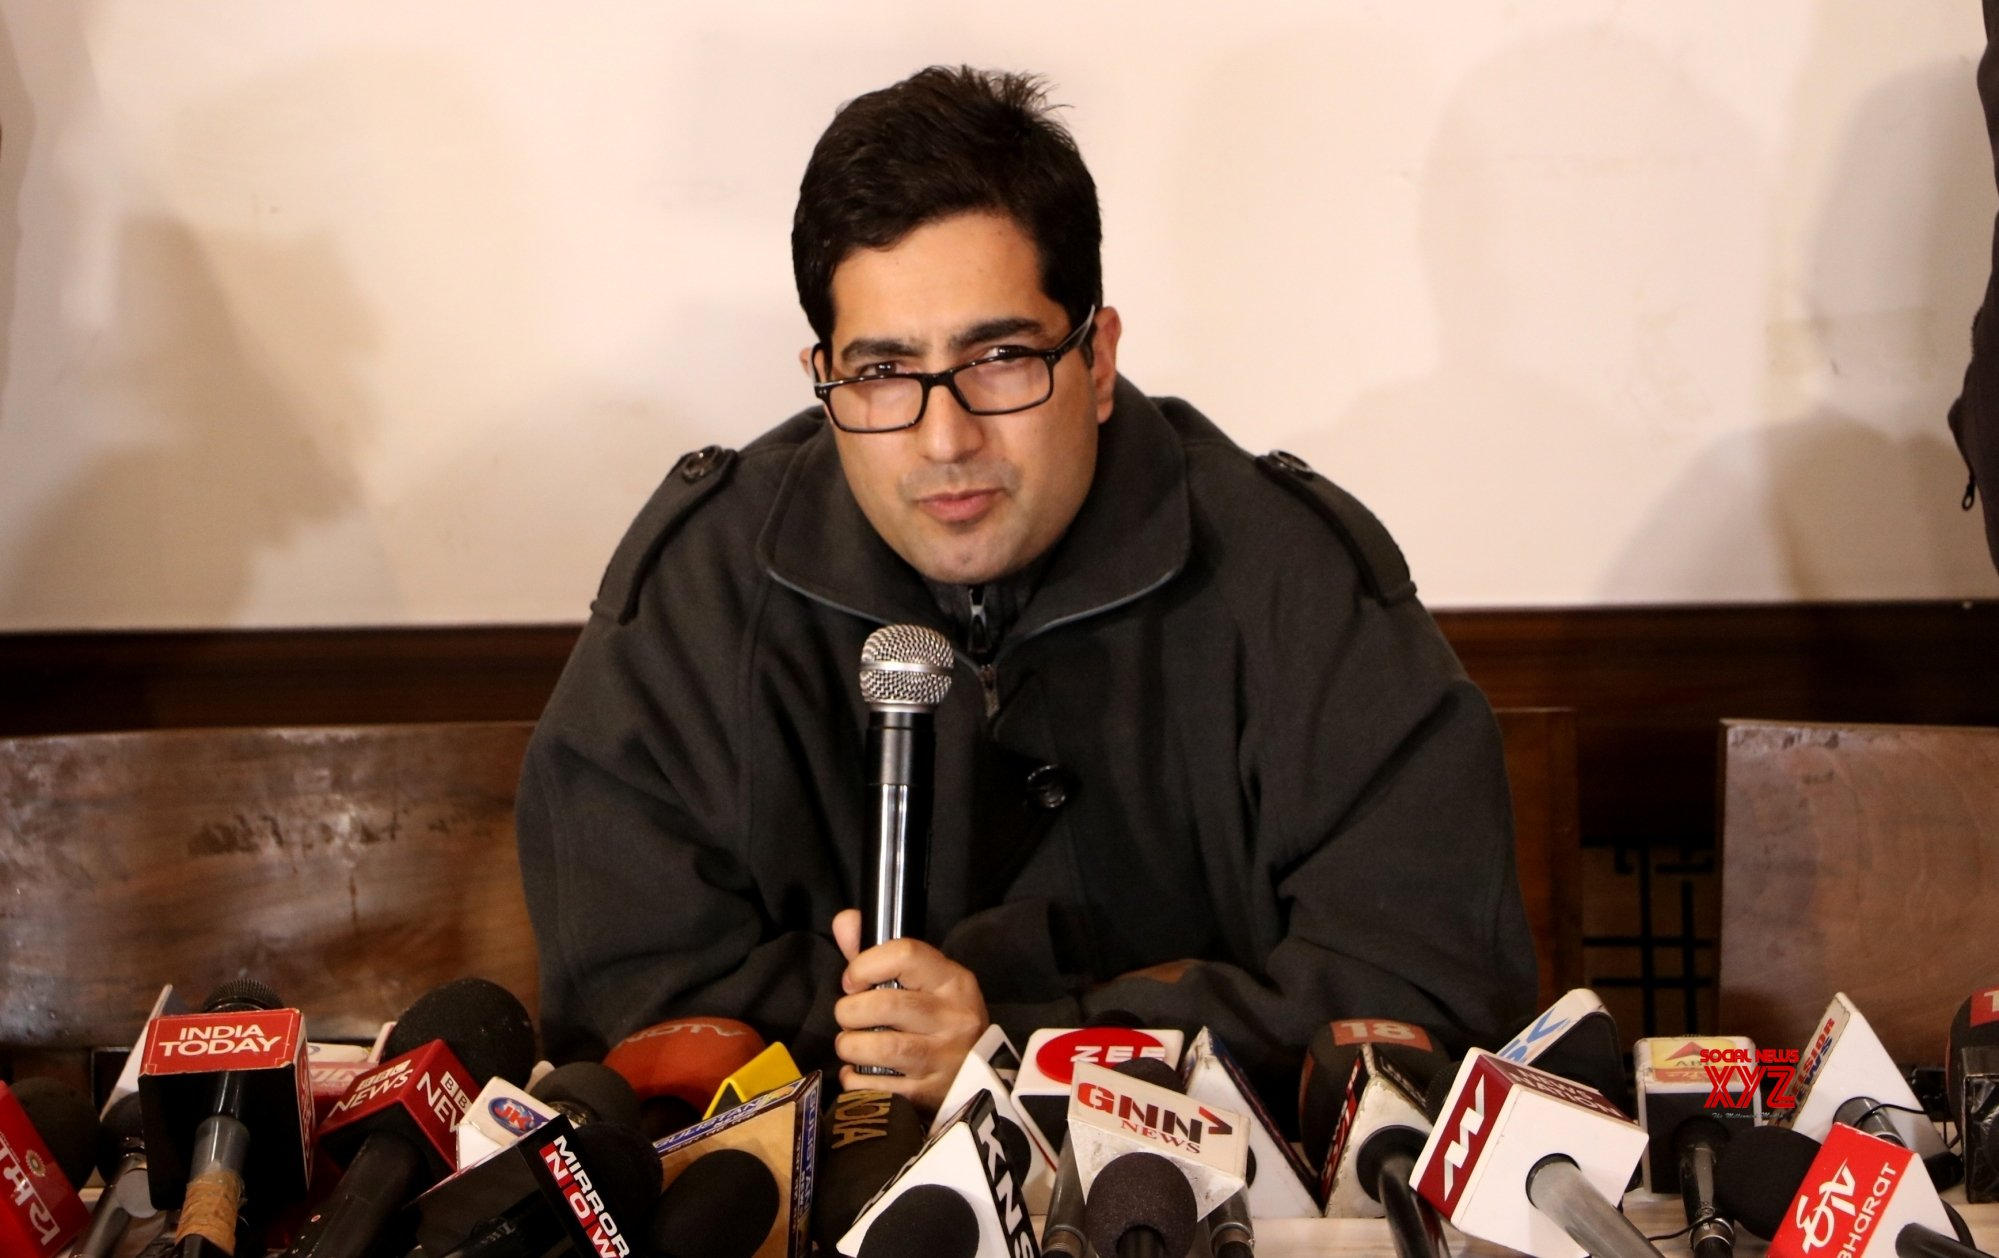 Shah Faesal launches J&K People's Movement